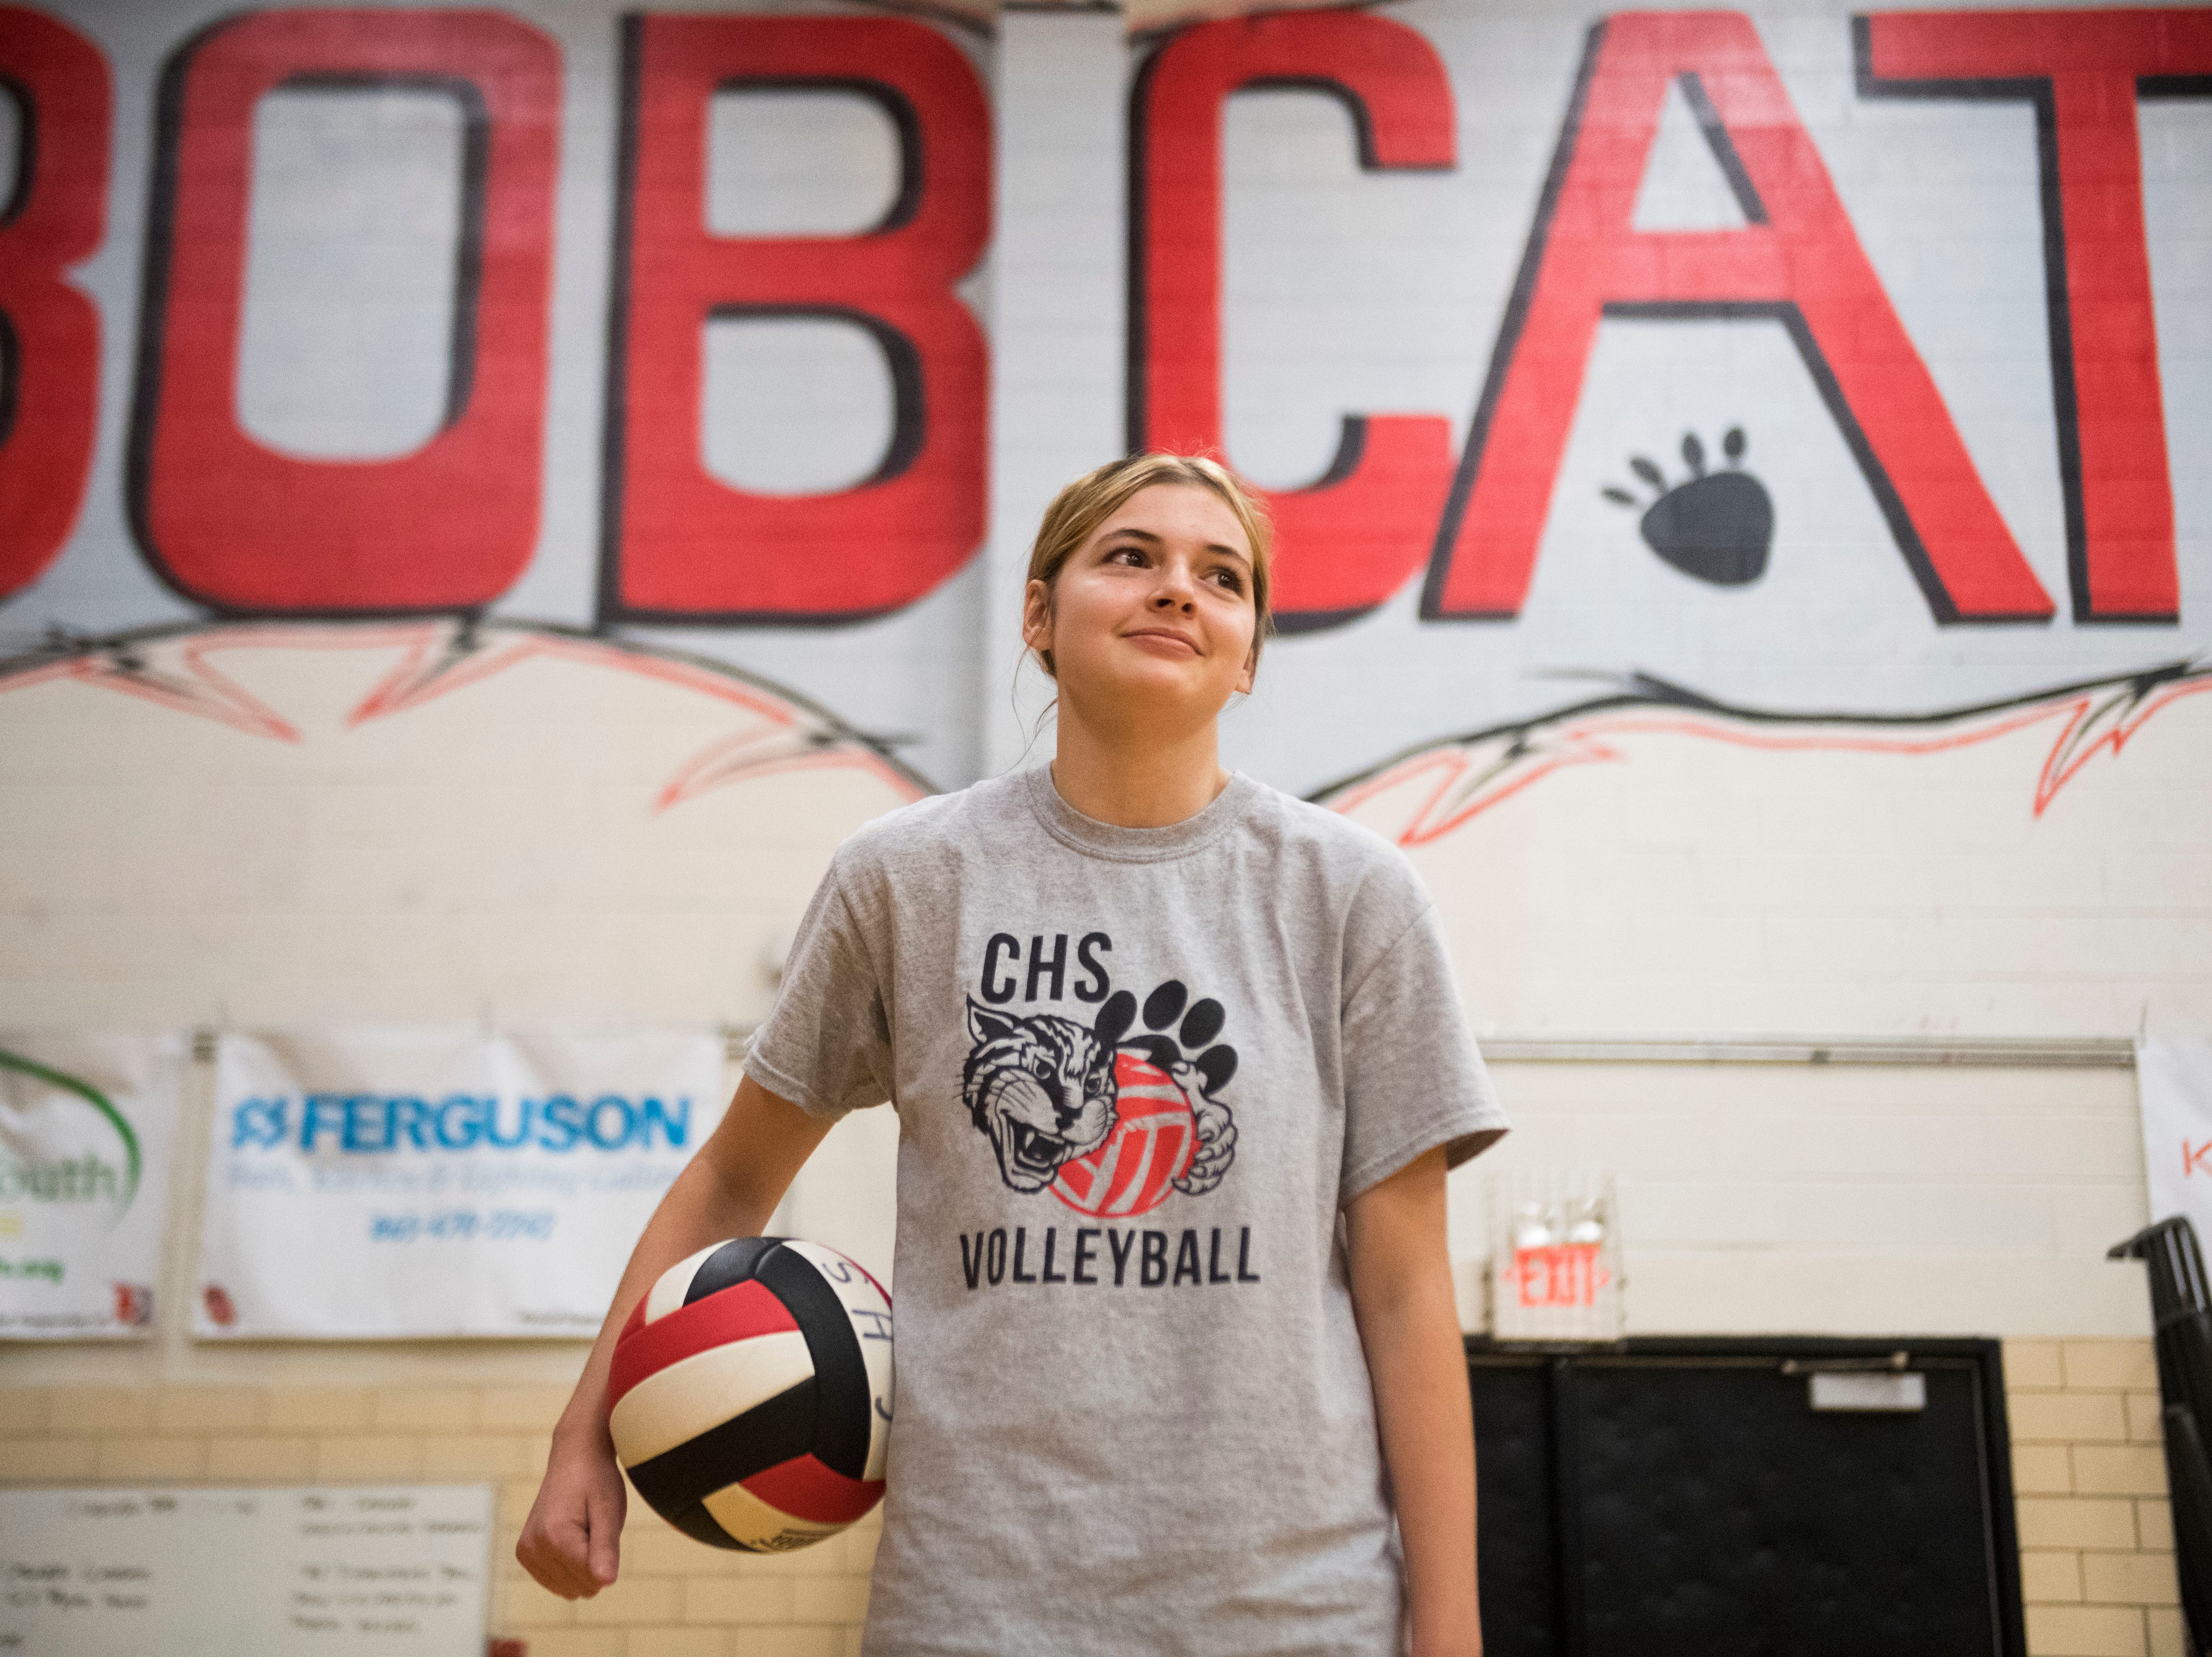 Sophomore Hannah Vogt poses for a portrait at a Central High School girls volleyball practice in the school gym Wednesday, Sept. 5, 2018. Hannah joined the team this season after girls volleyball coach Lorri Johnson discovered her in a special education class Johnson was a teachers aide in.